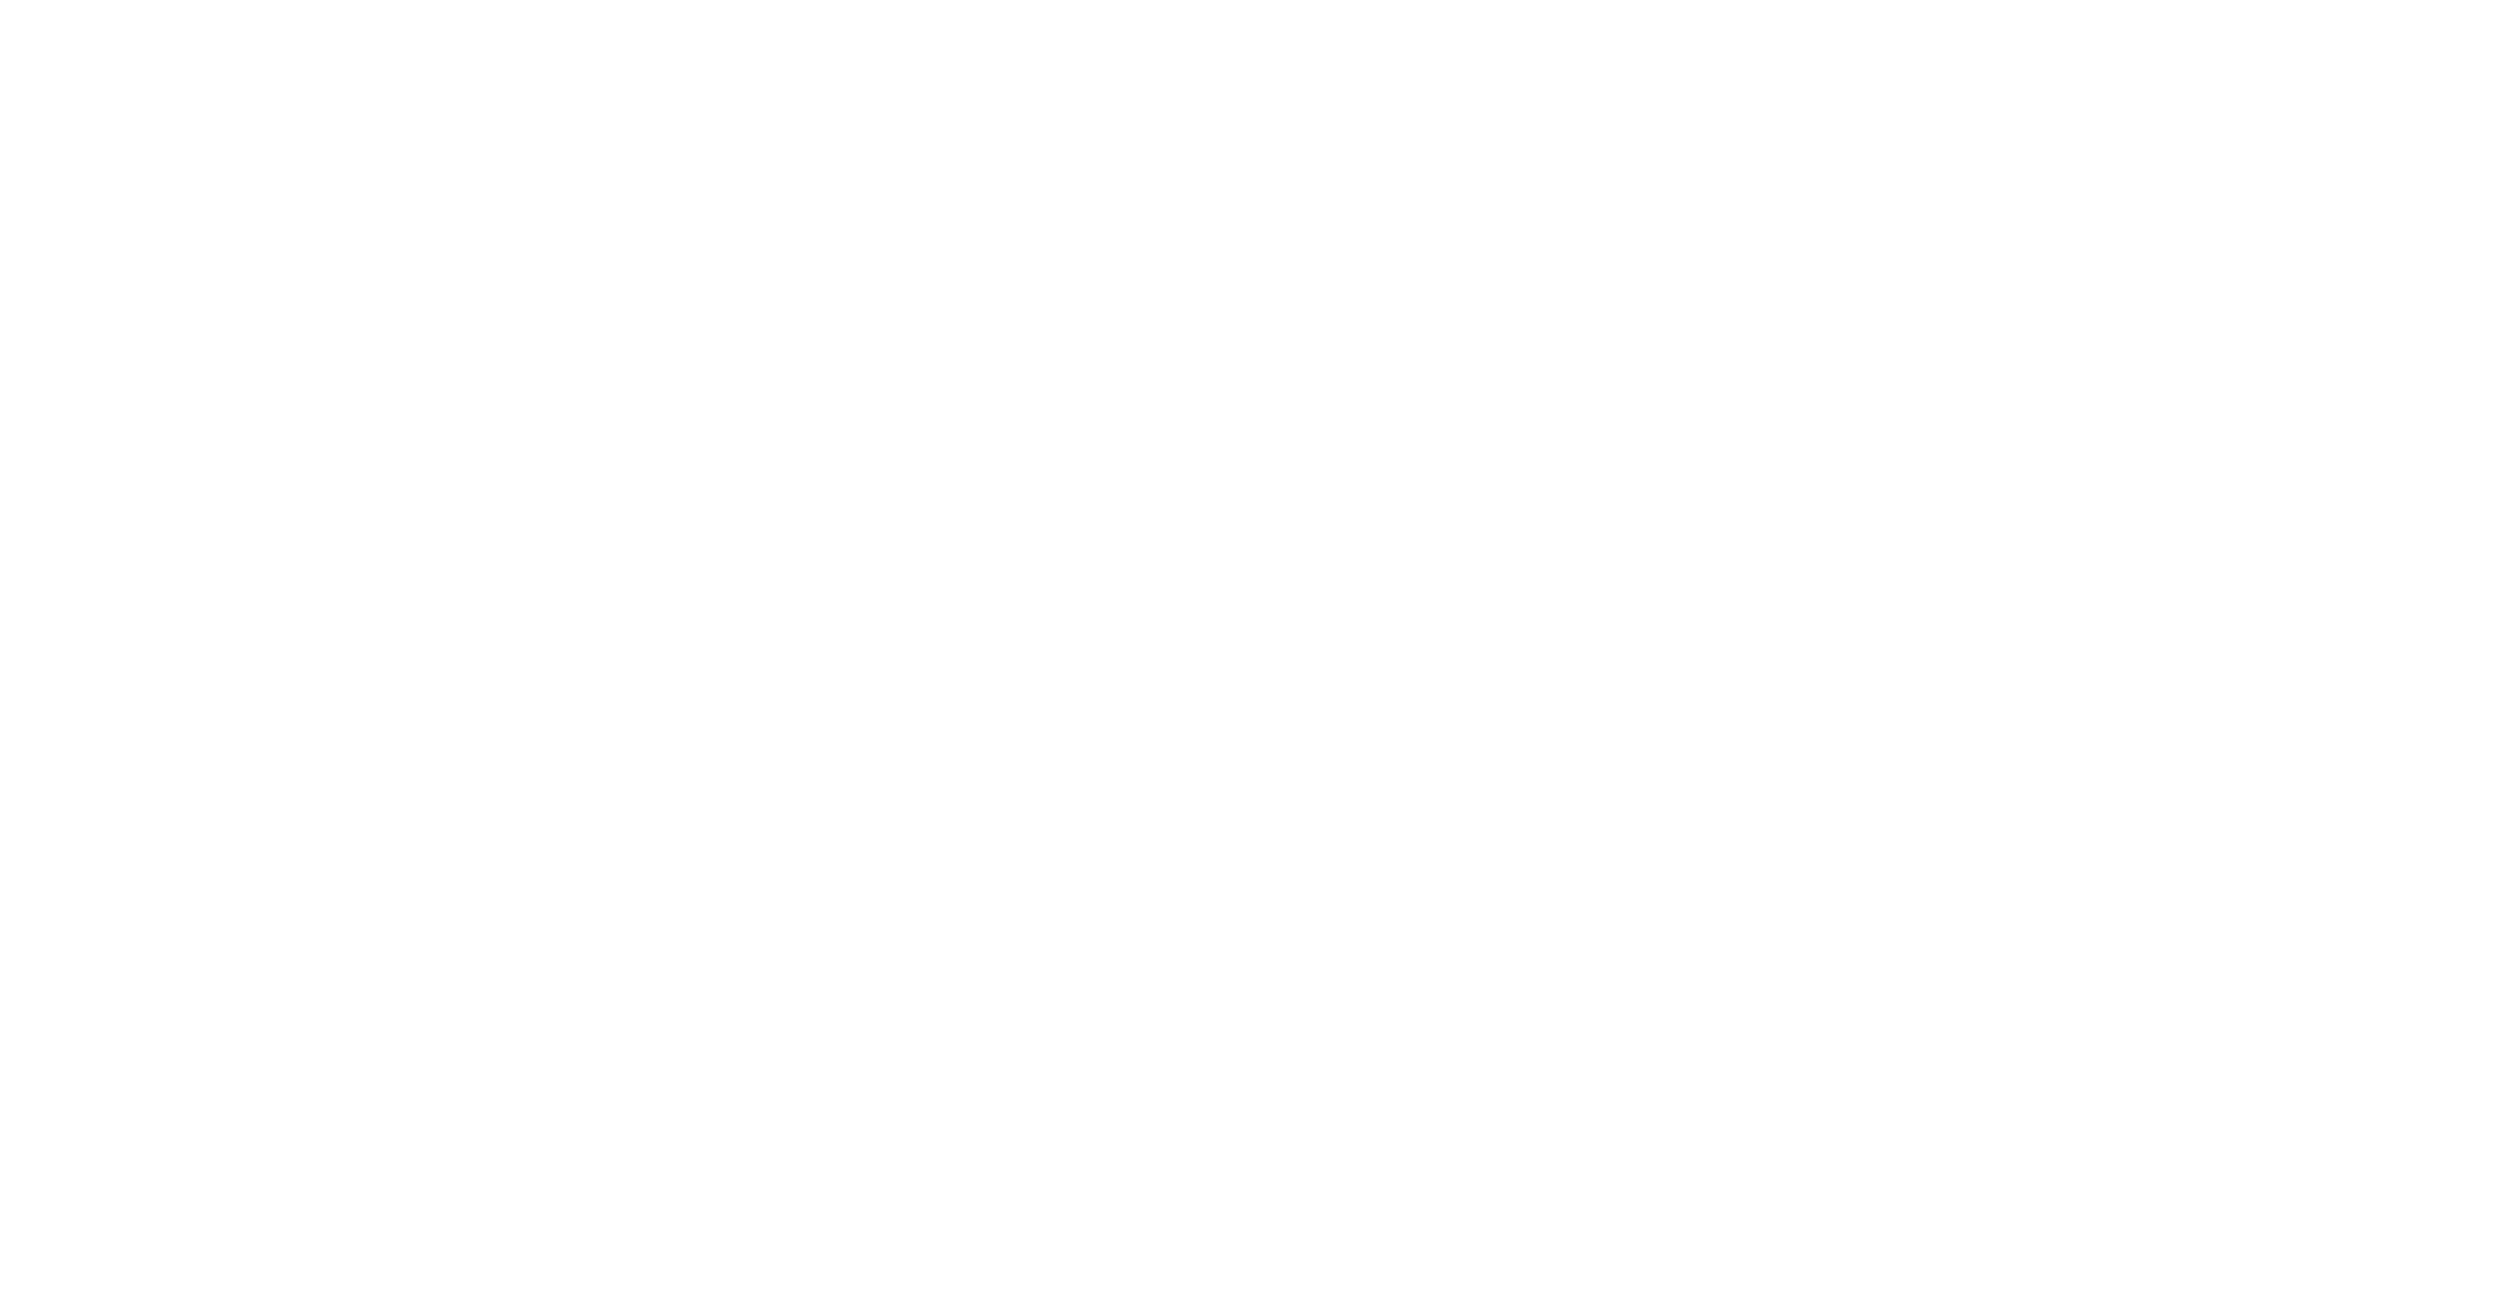 SERIES-003-WHITE TEXT-5.png